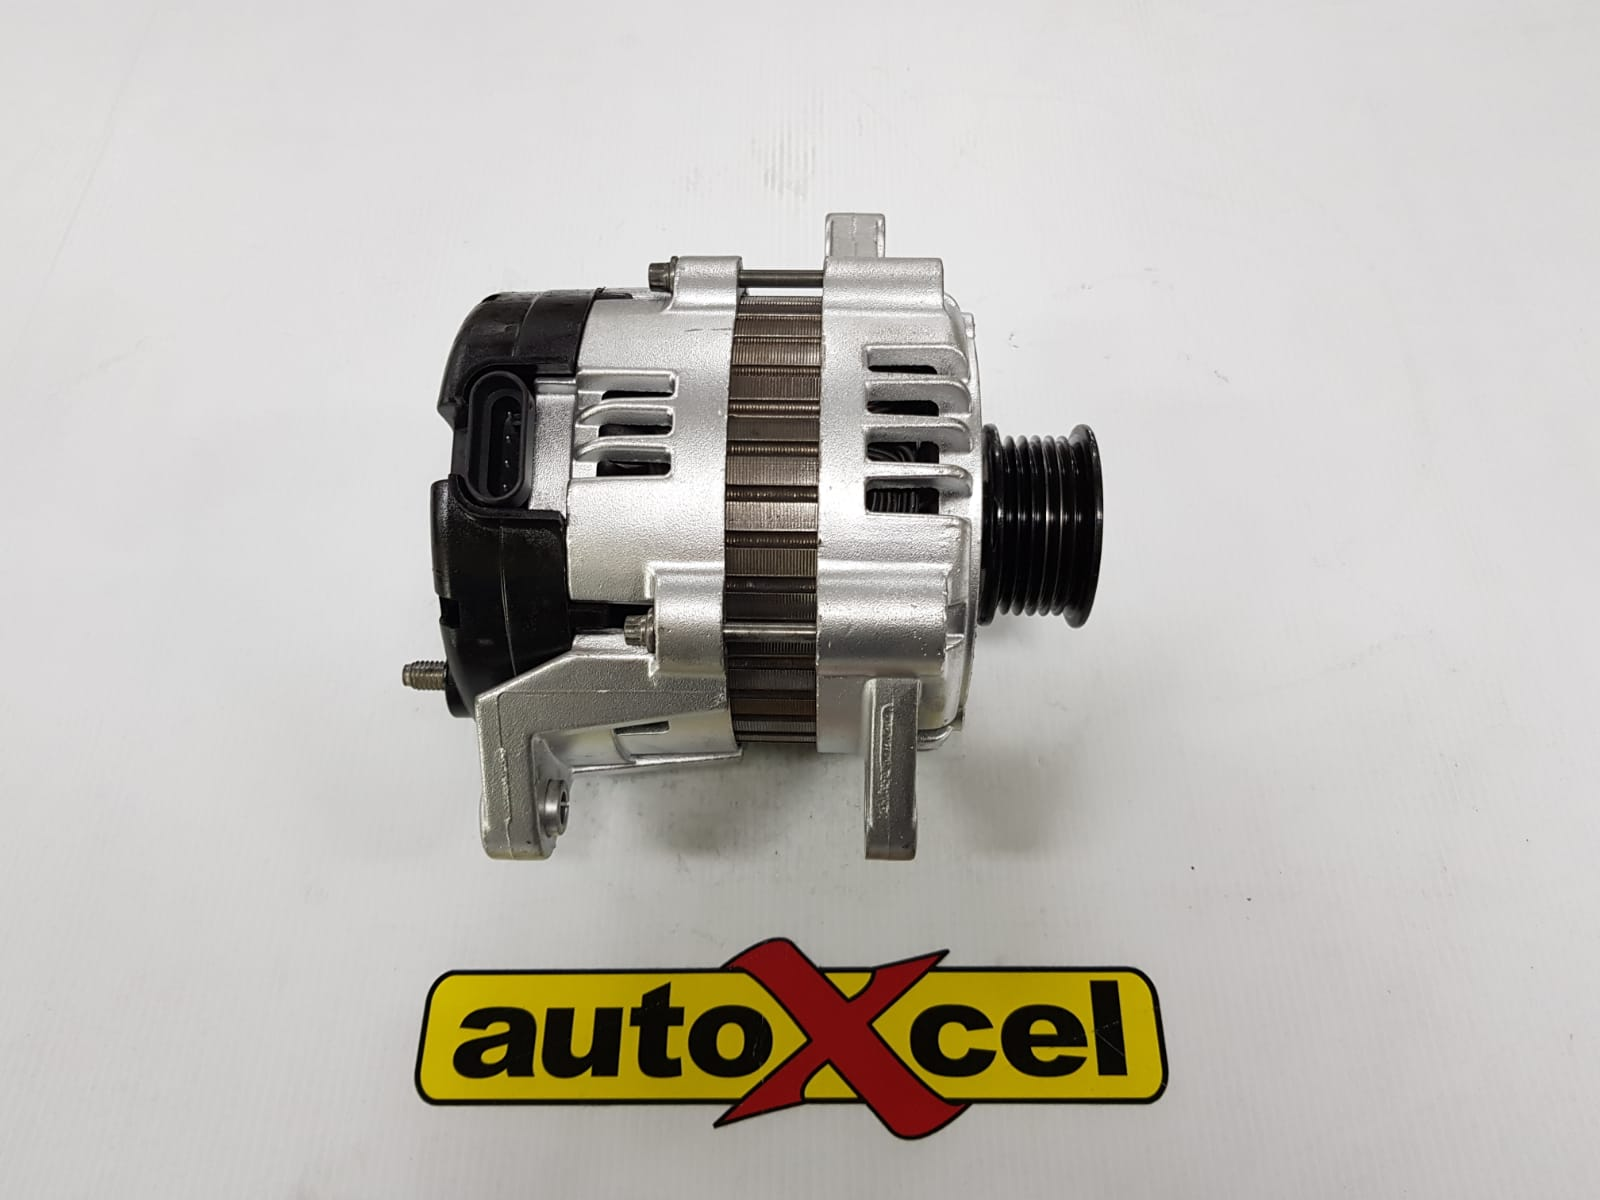 Holden Barina TK alternator